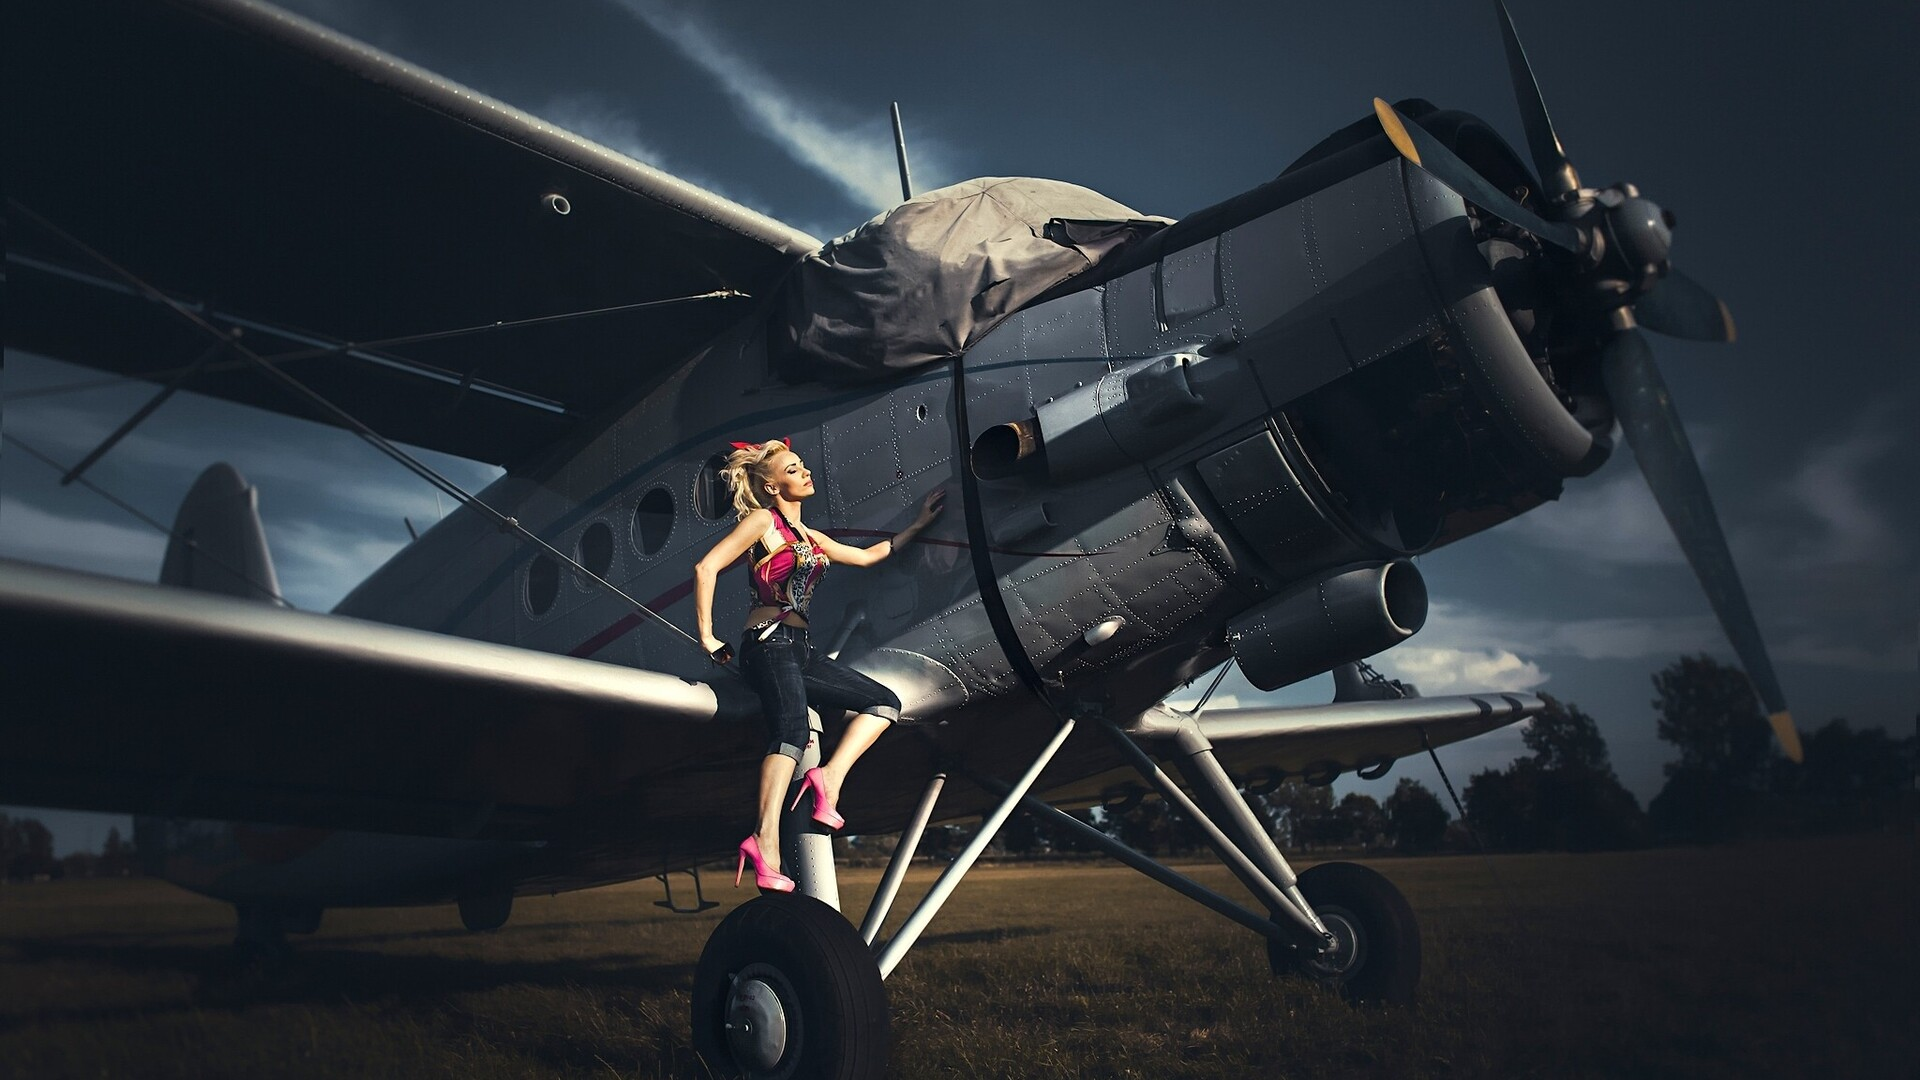 women-with-planes-image.jpg